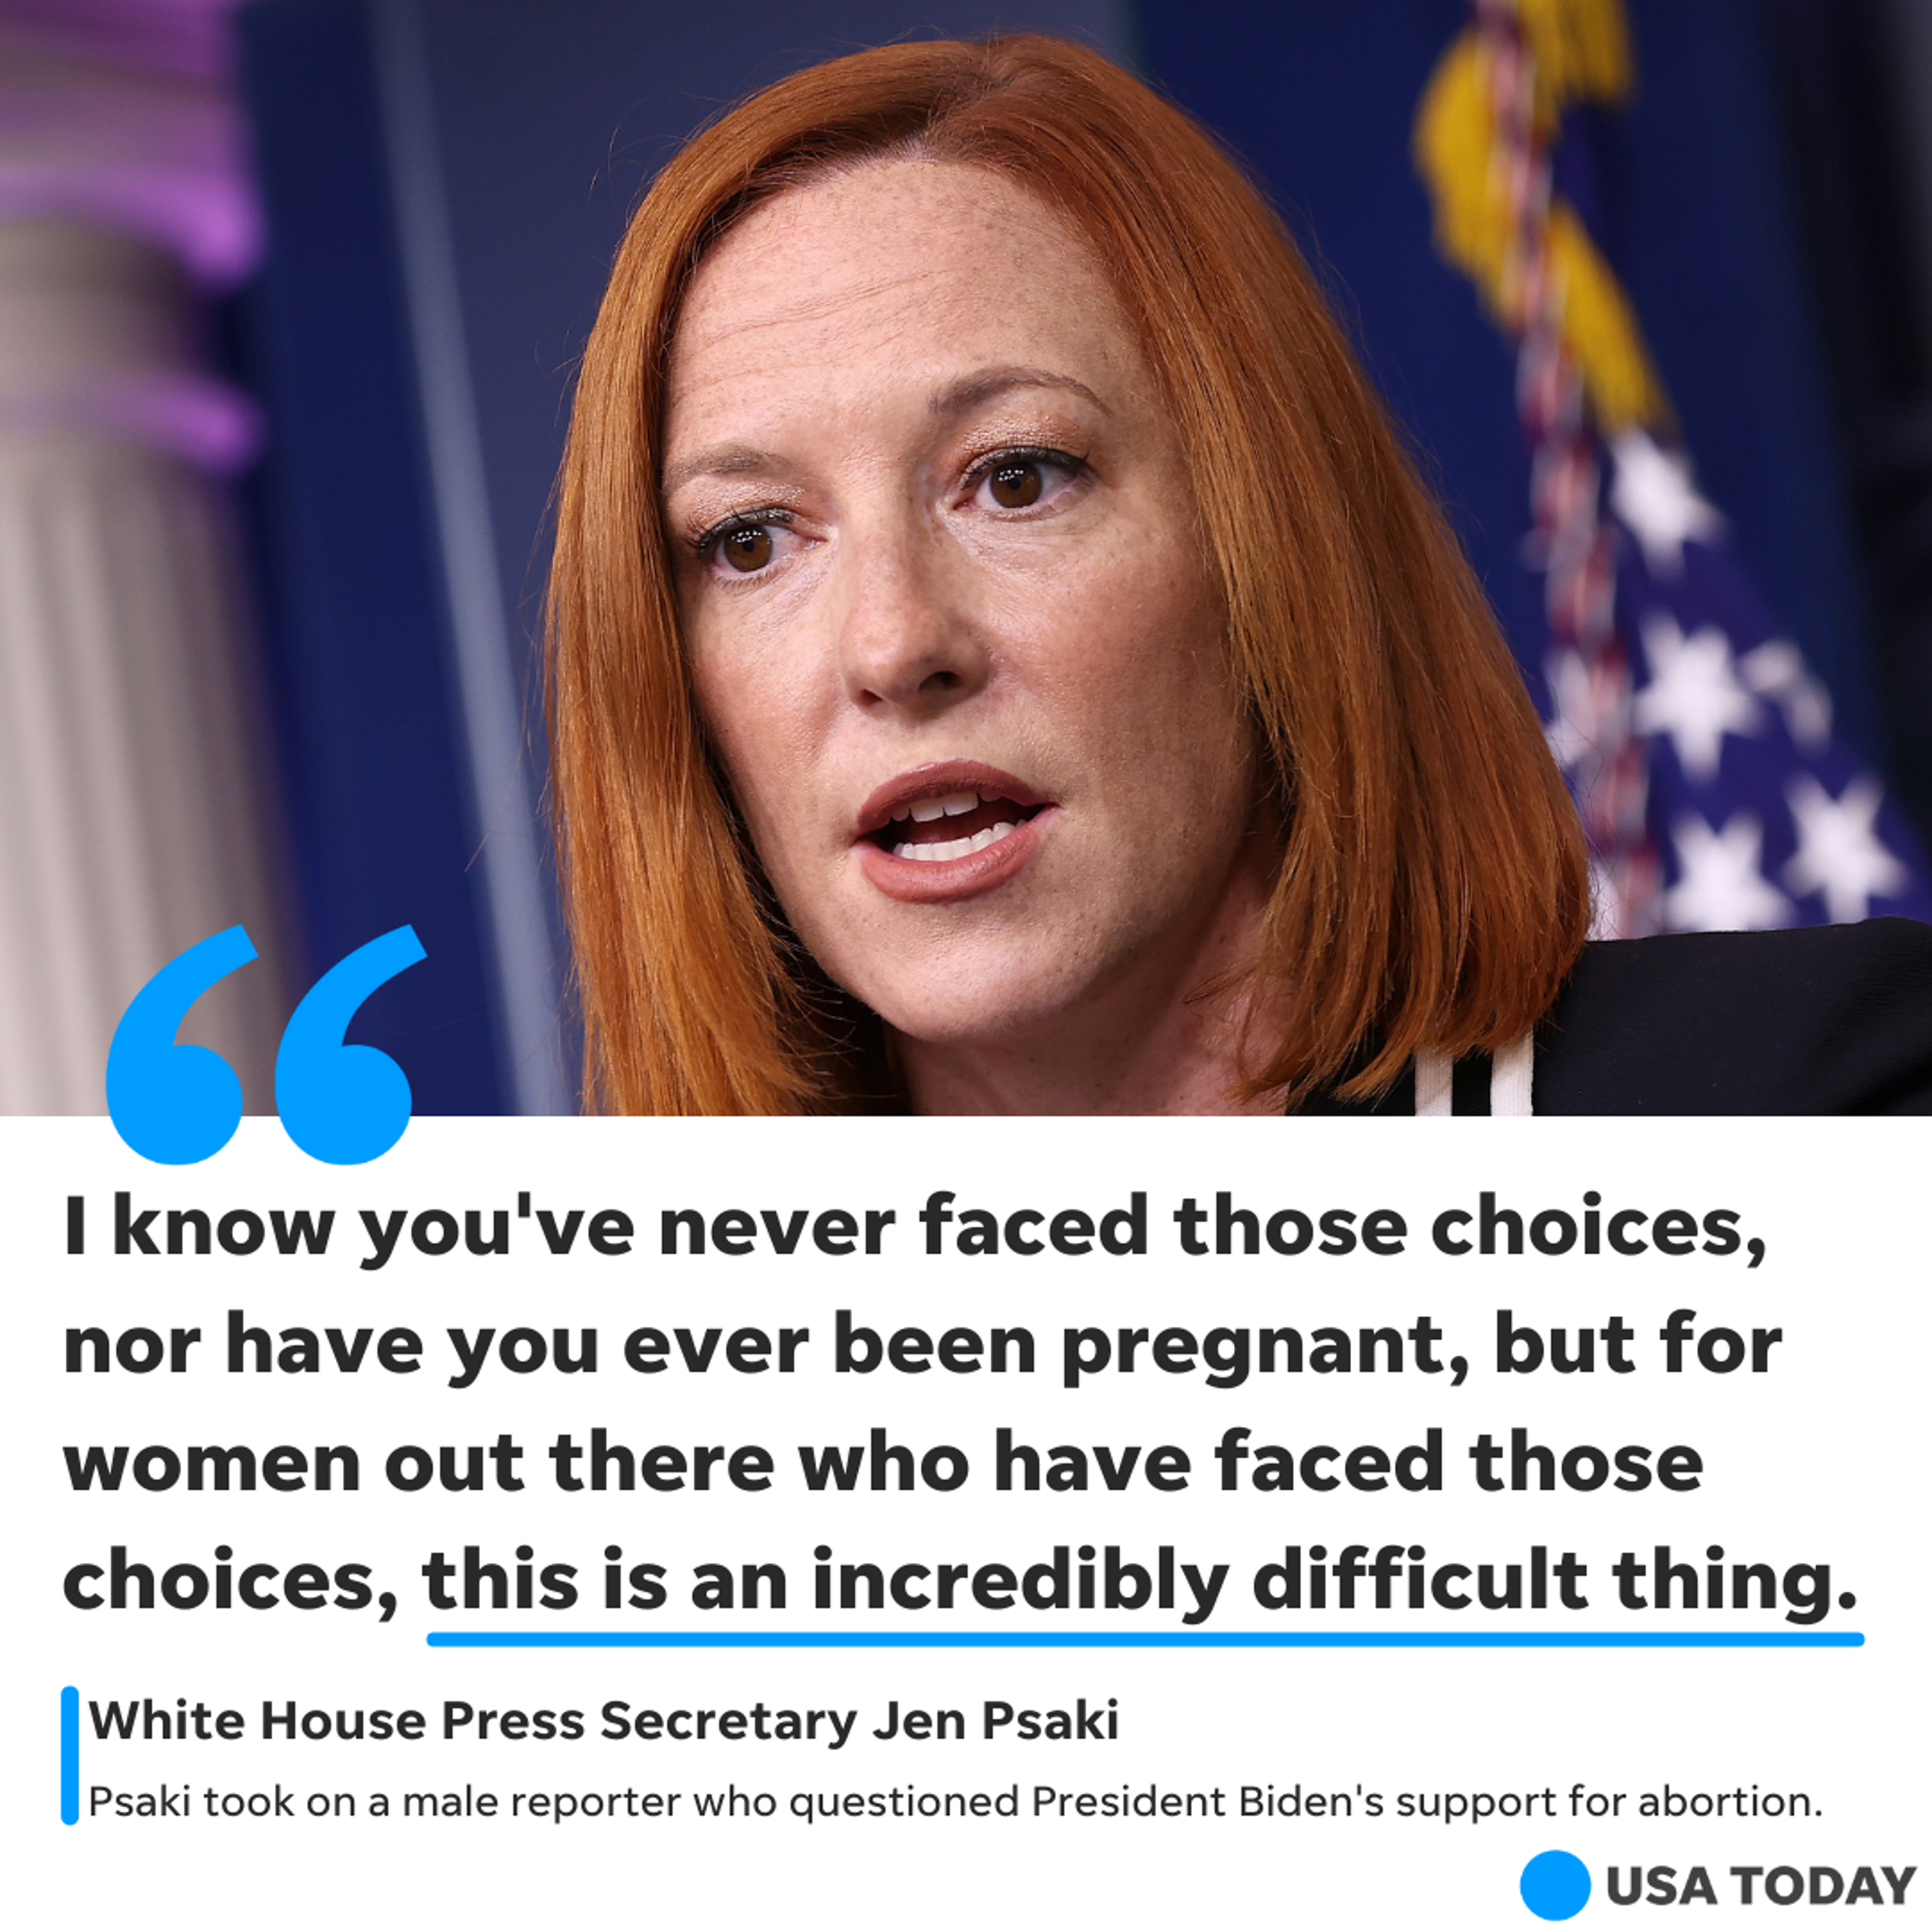 White House press secretary Jen Psaki affirms the president's support for abortion rights.